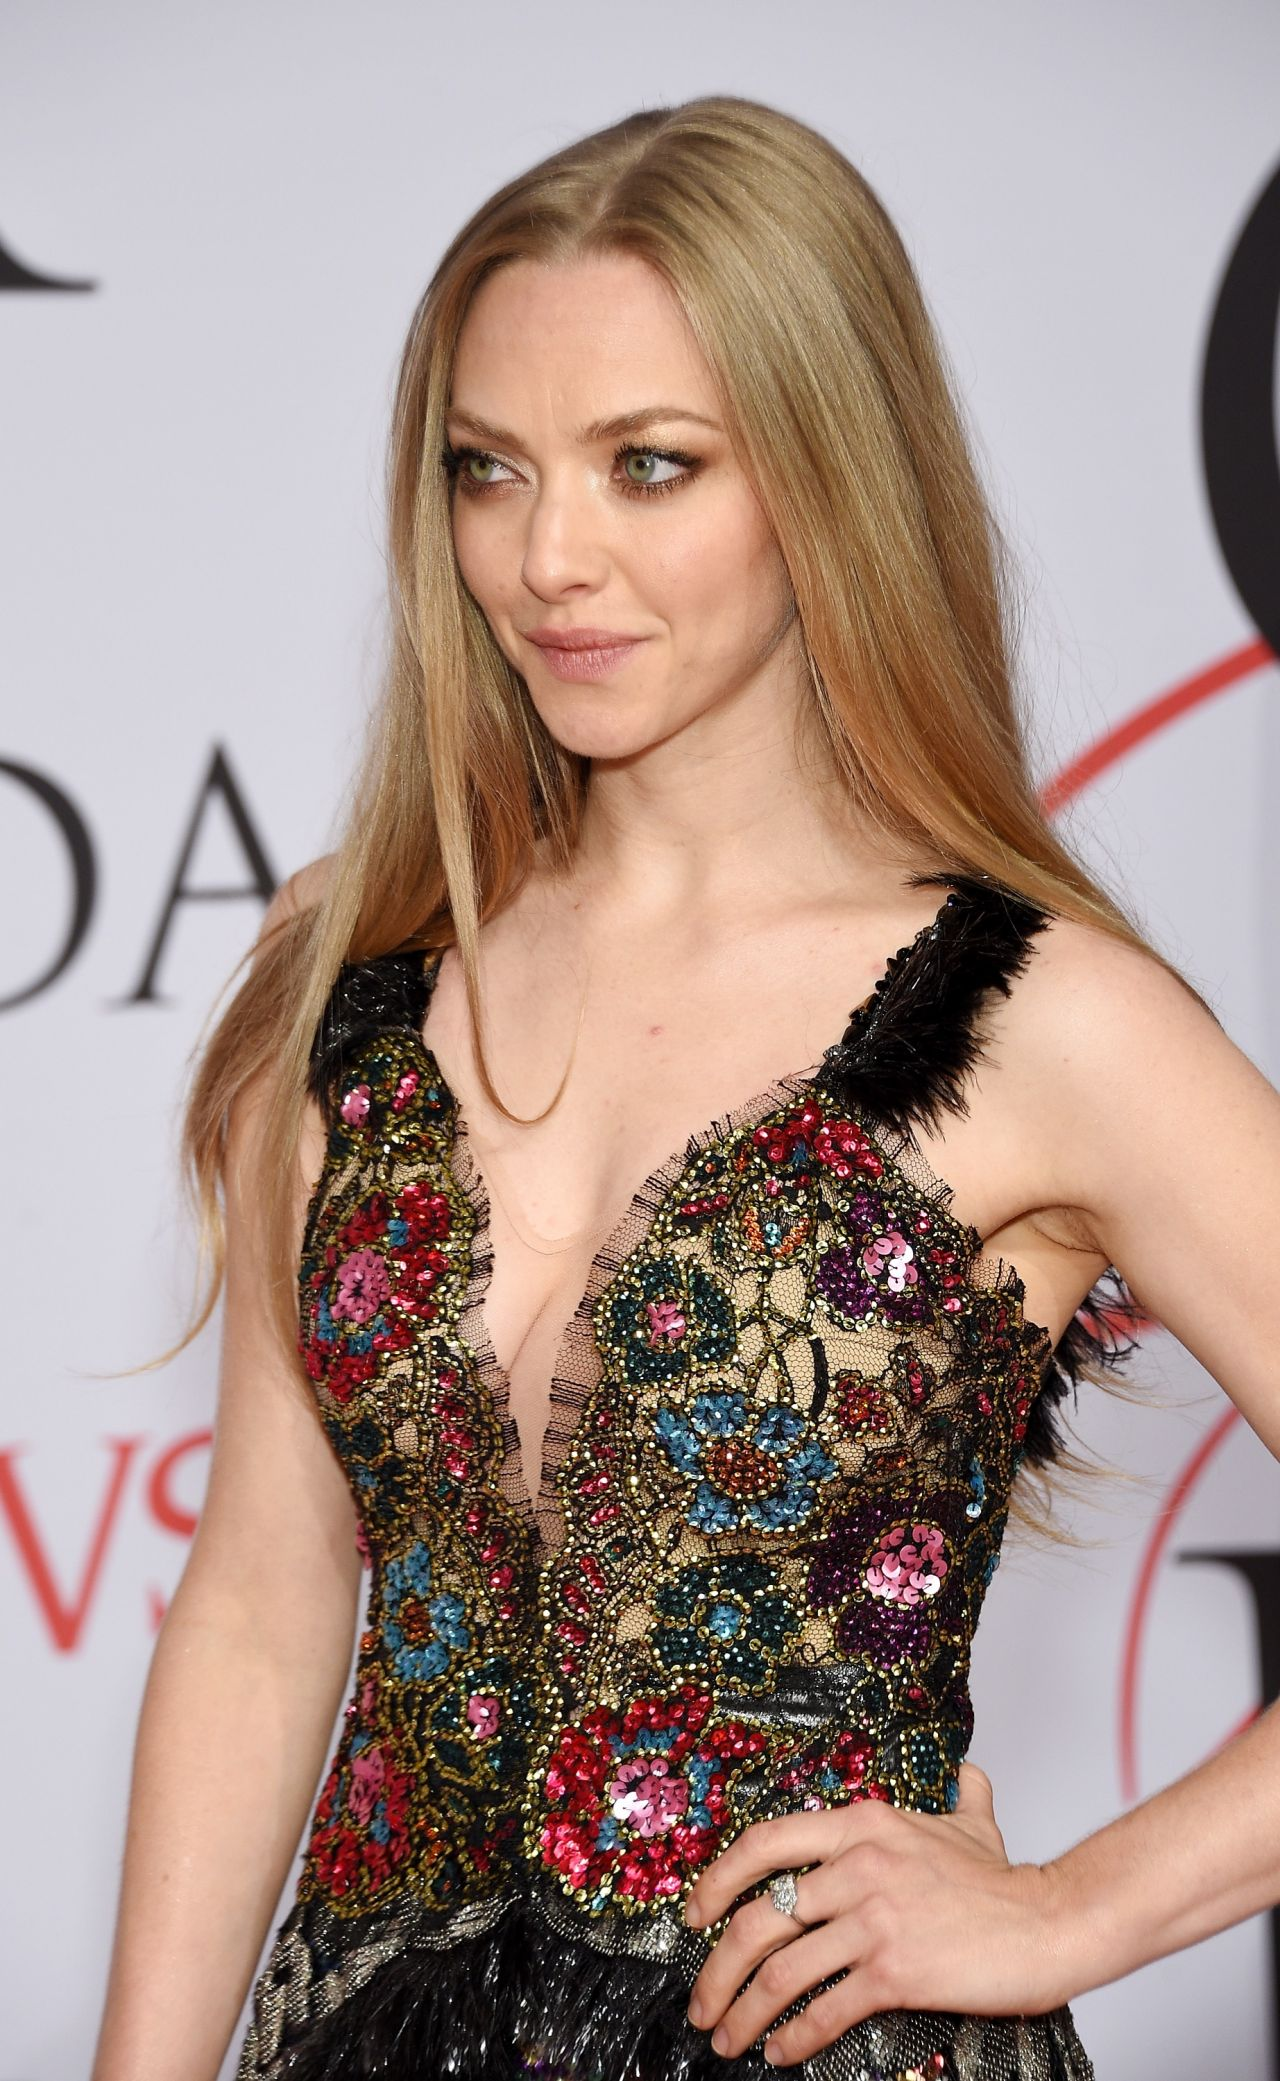 Amanda Seyfried – 2015 CFDA Fashion Awards in New York City Amanda Seyfried